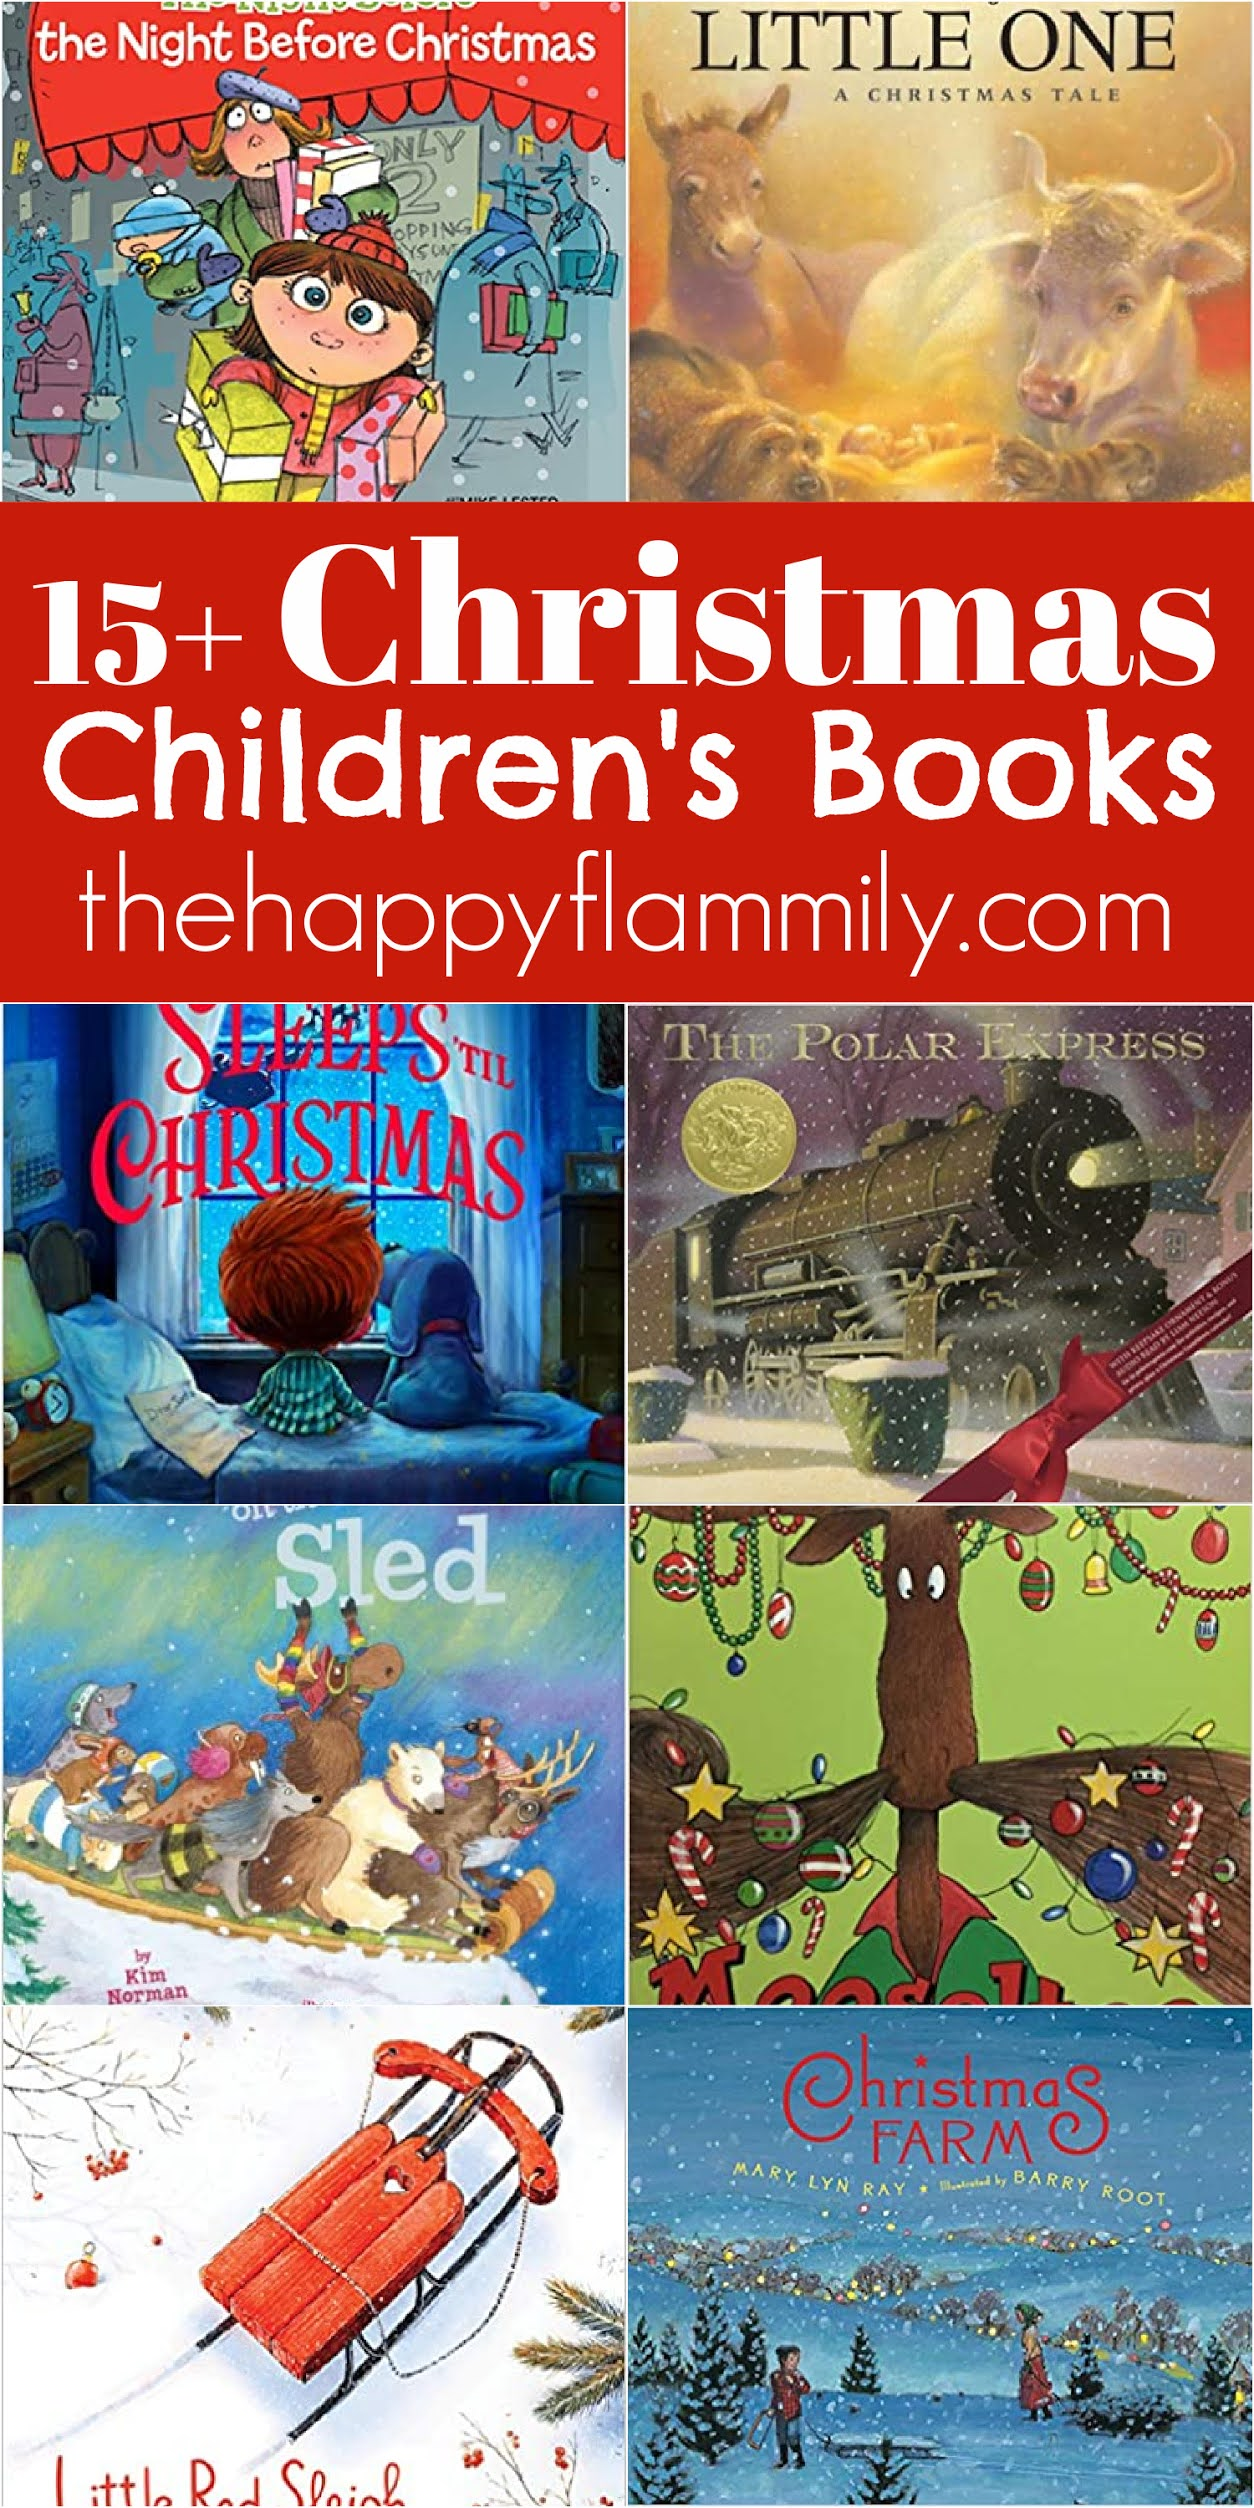 Christmas kids books. Christmas in the manger. Christmas books for kindergarten. Best Christmas picture books. Christmas books for 8-year-olds. Christmas books for preschoolers. 25 children's Christmas books. Best Christmas board books. Best children's Christmas books 2020. #books #christmas #holiday #reading